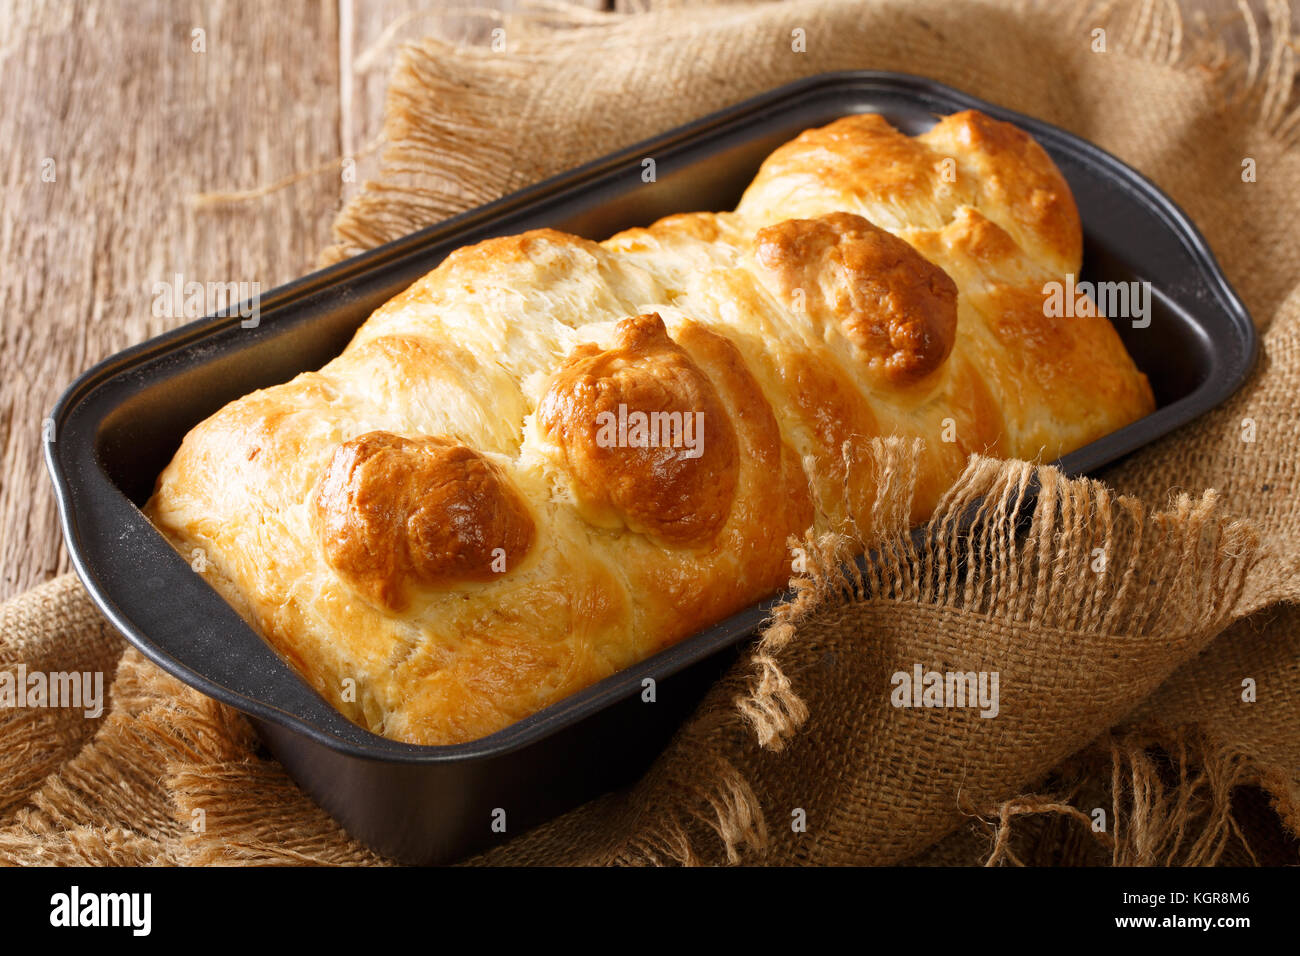 Hot aromatic brioche bread in a baking dish close-up on a table. horizontal - Stock Image